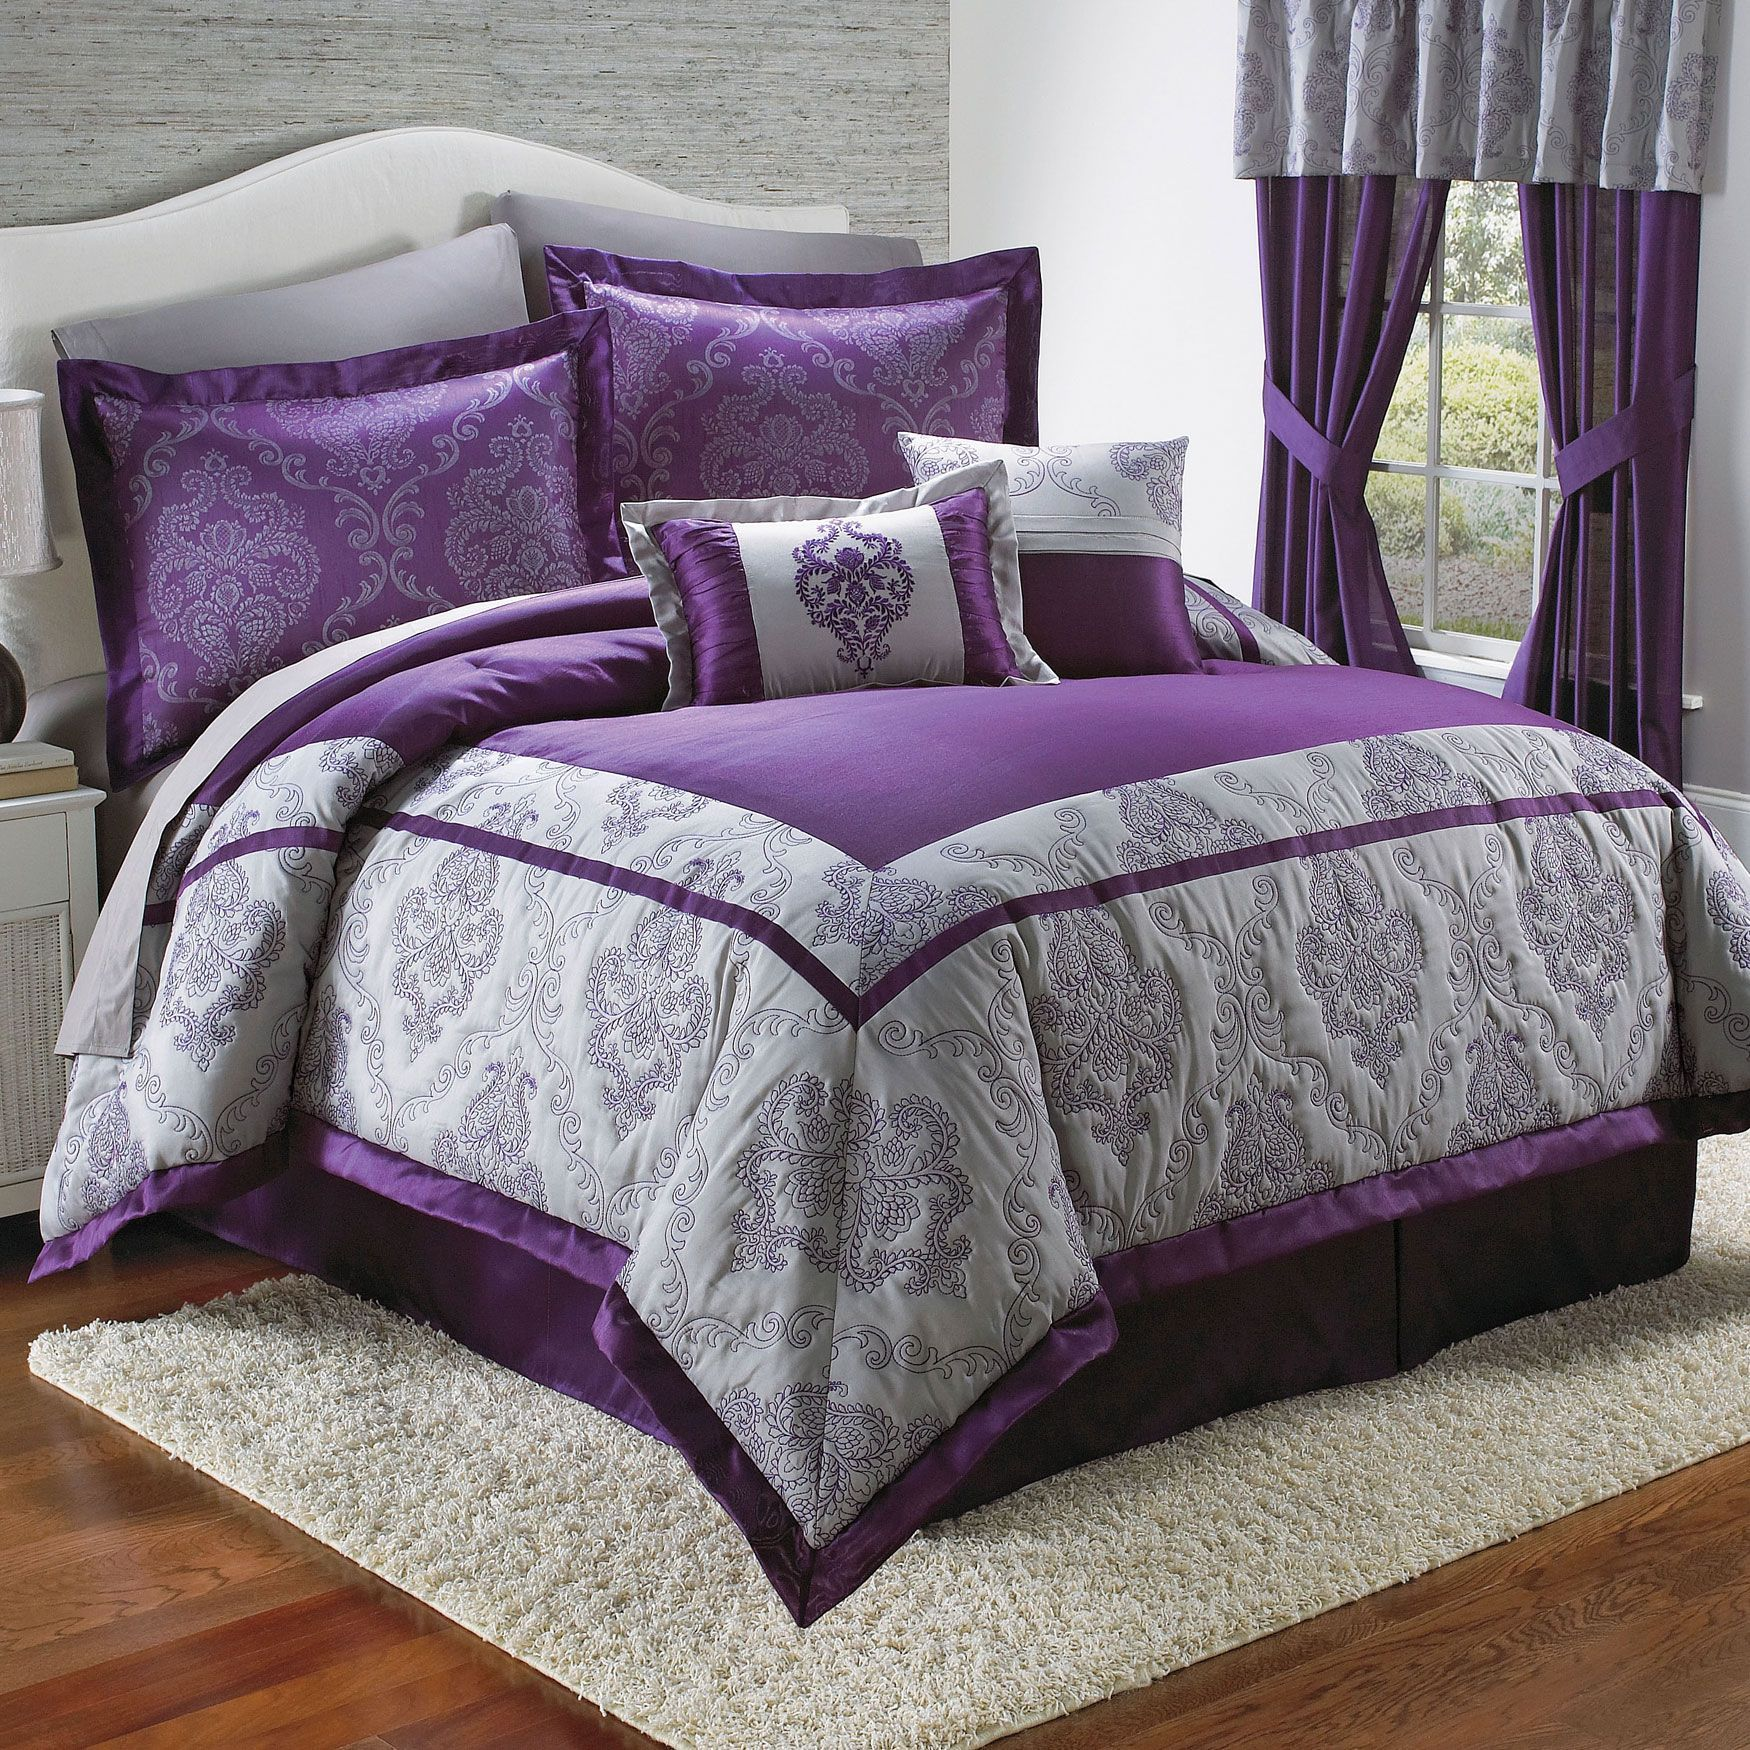 Delila 6 Pc Embroidered Comforter Set More Purple Bedrooms